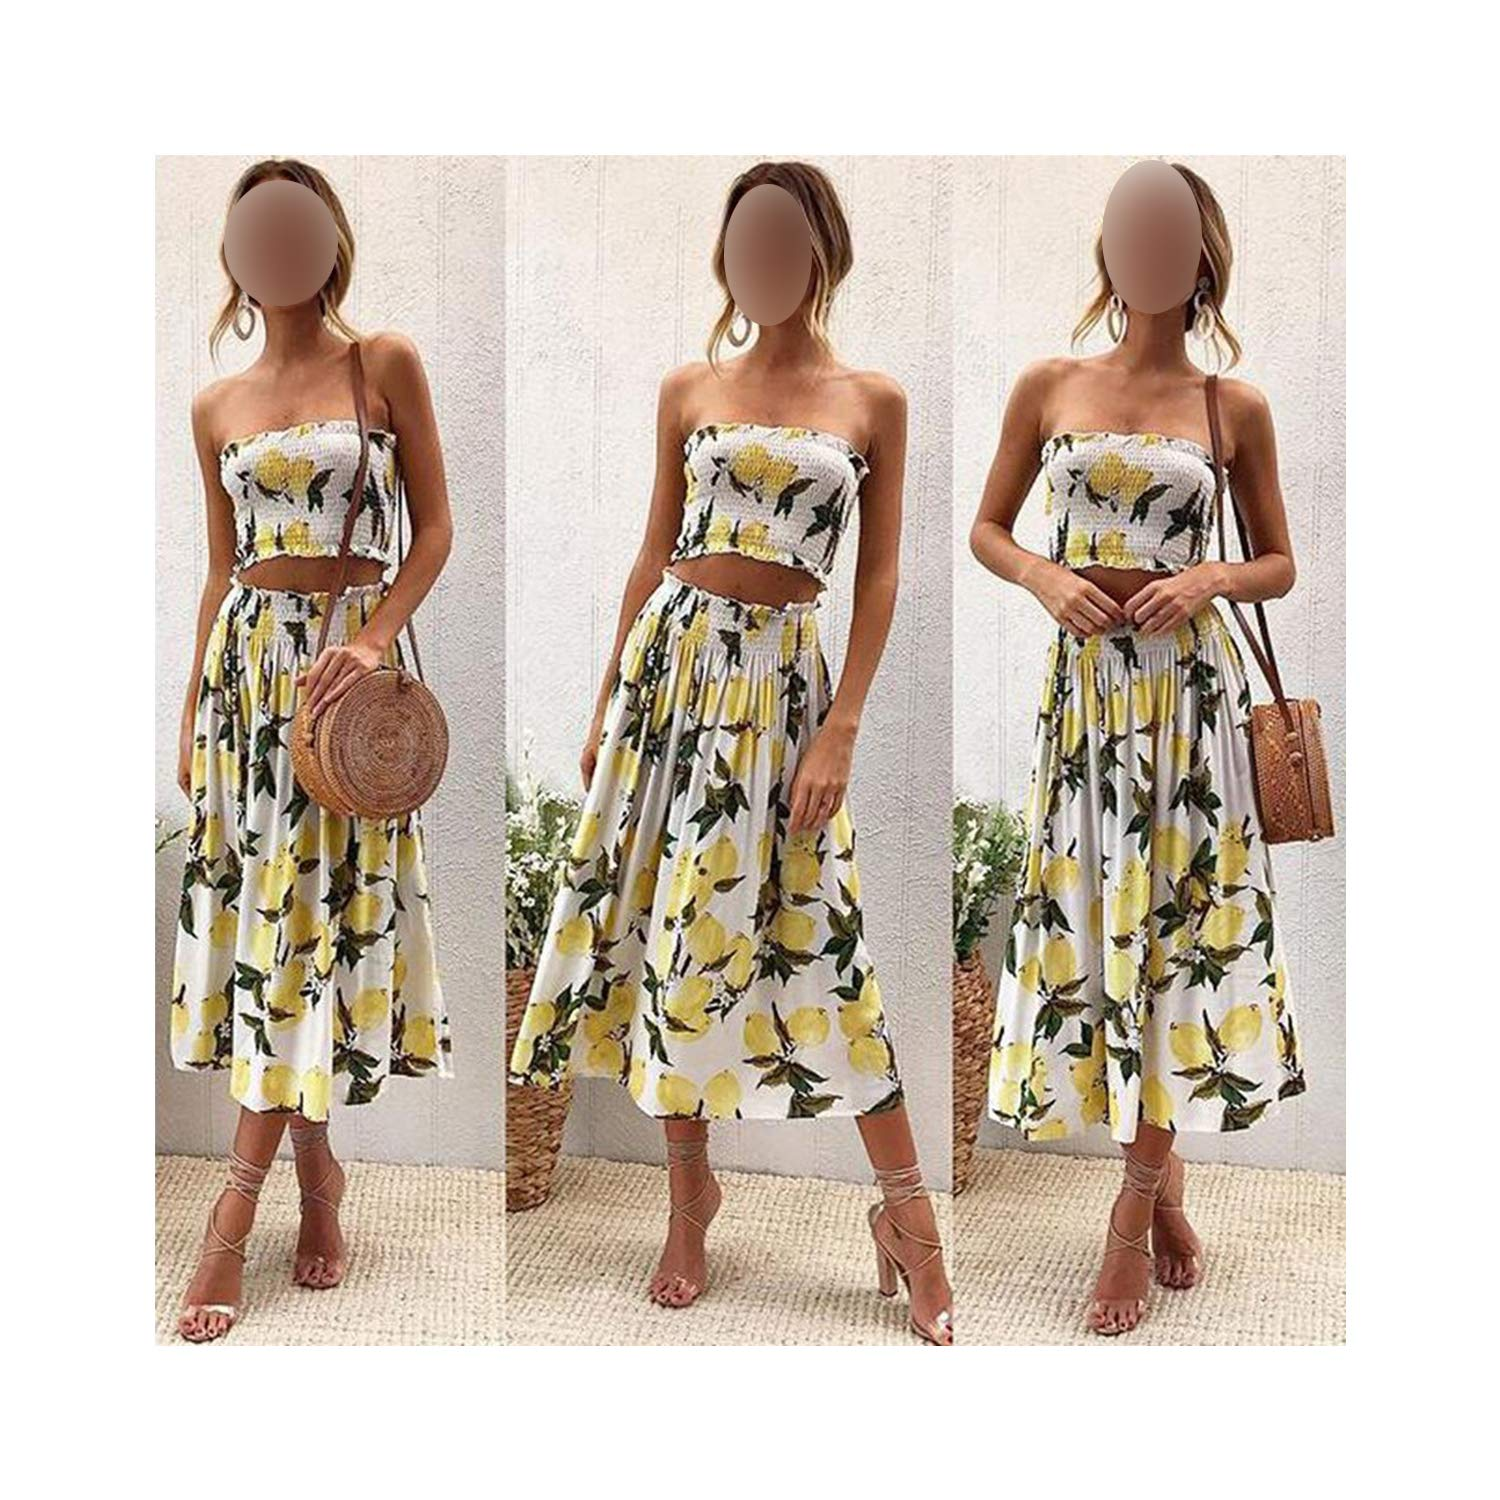 Womens Summer Explosions Hot Printed Lemon Suower Wrapped Che Back Trend Skirt Two-Piece Suit